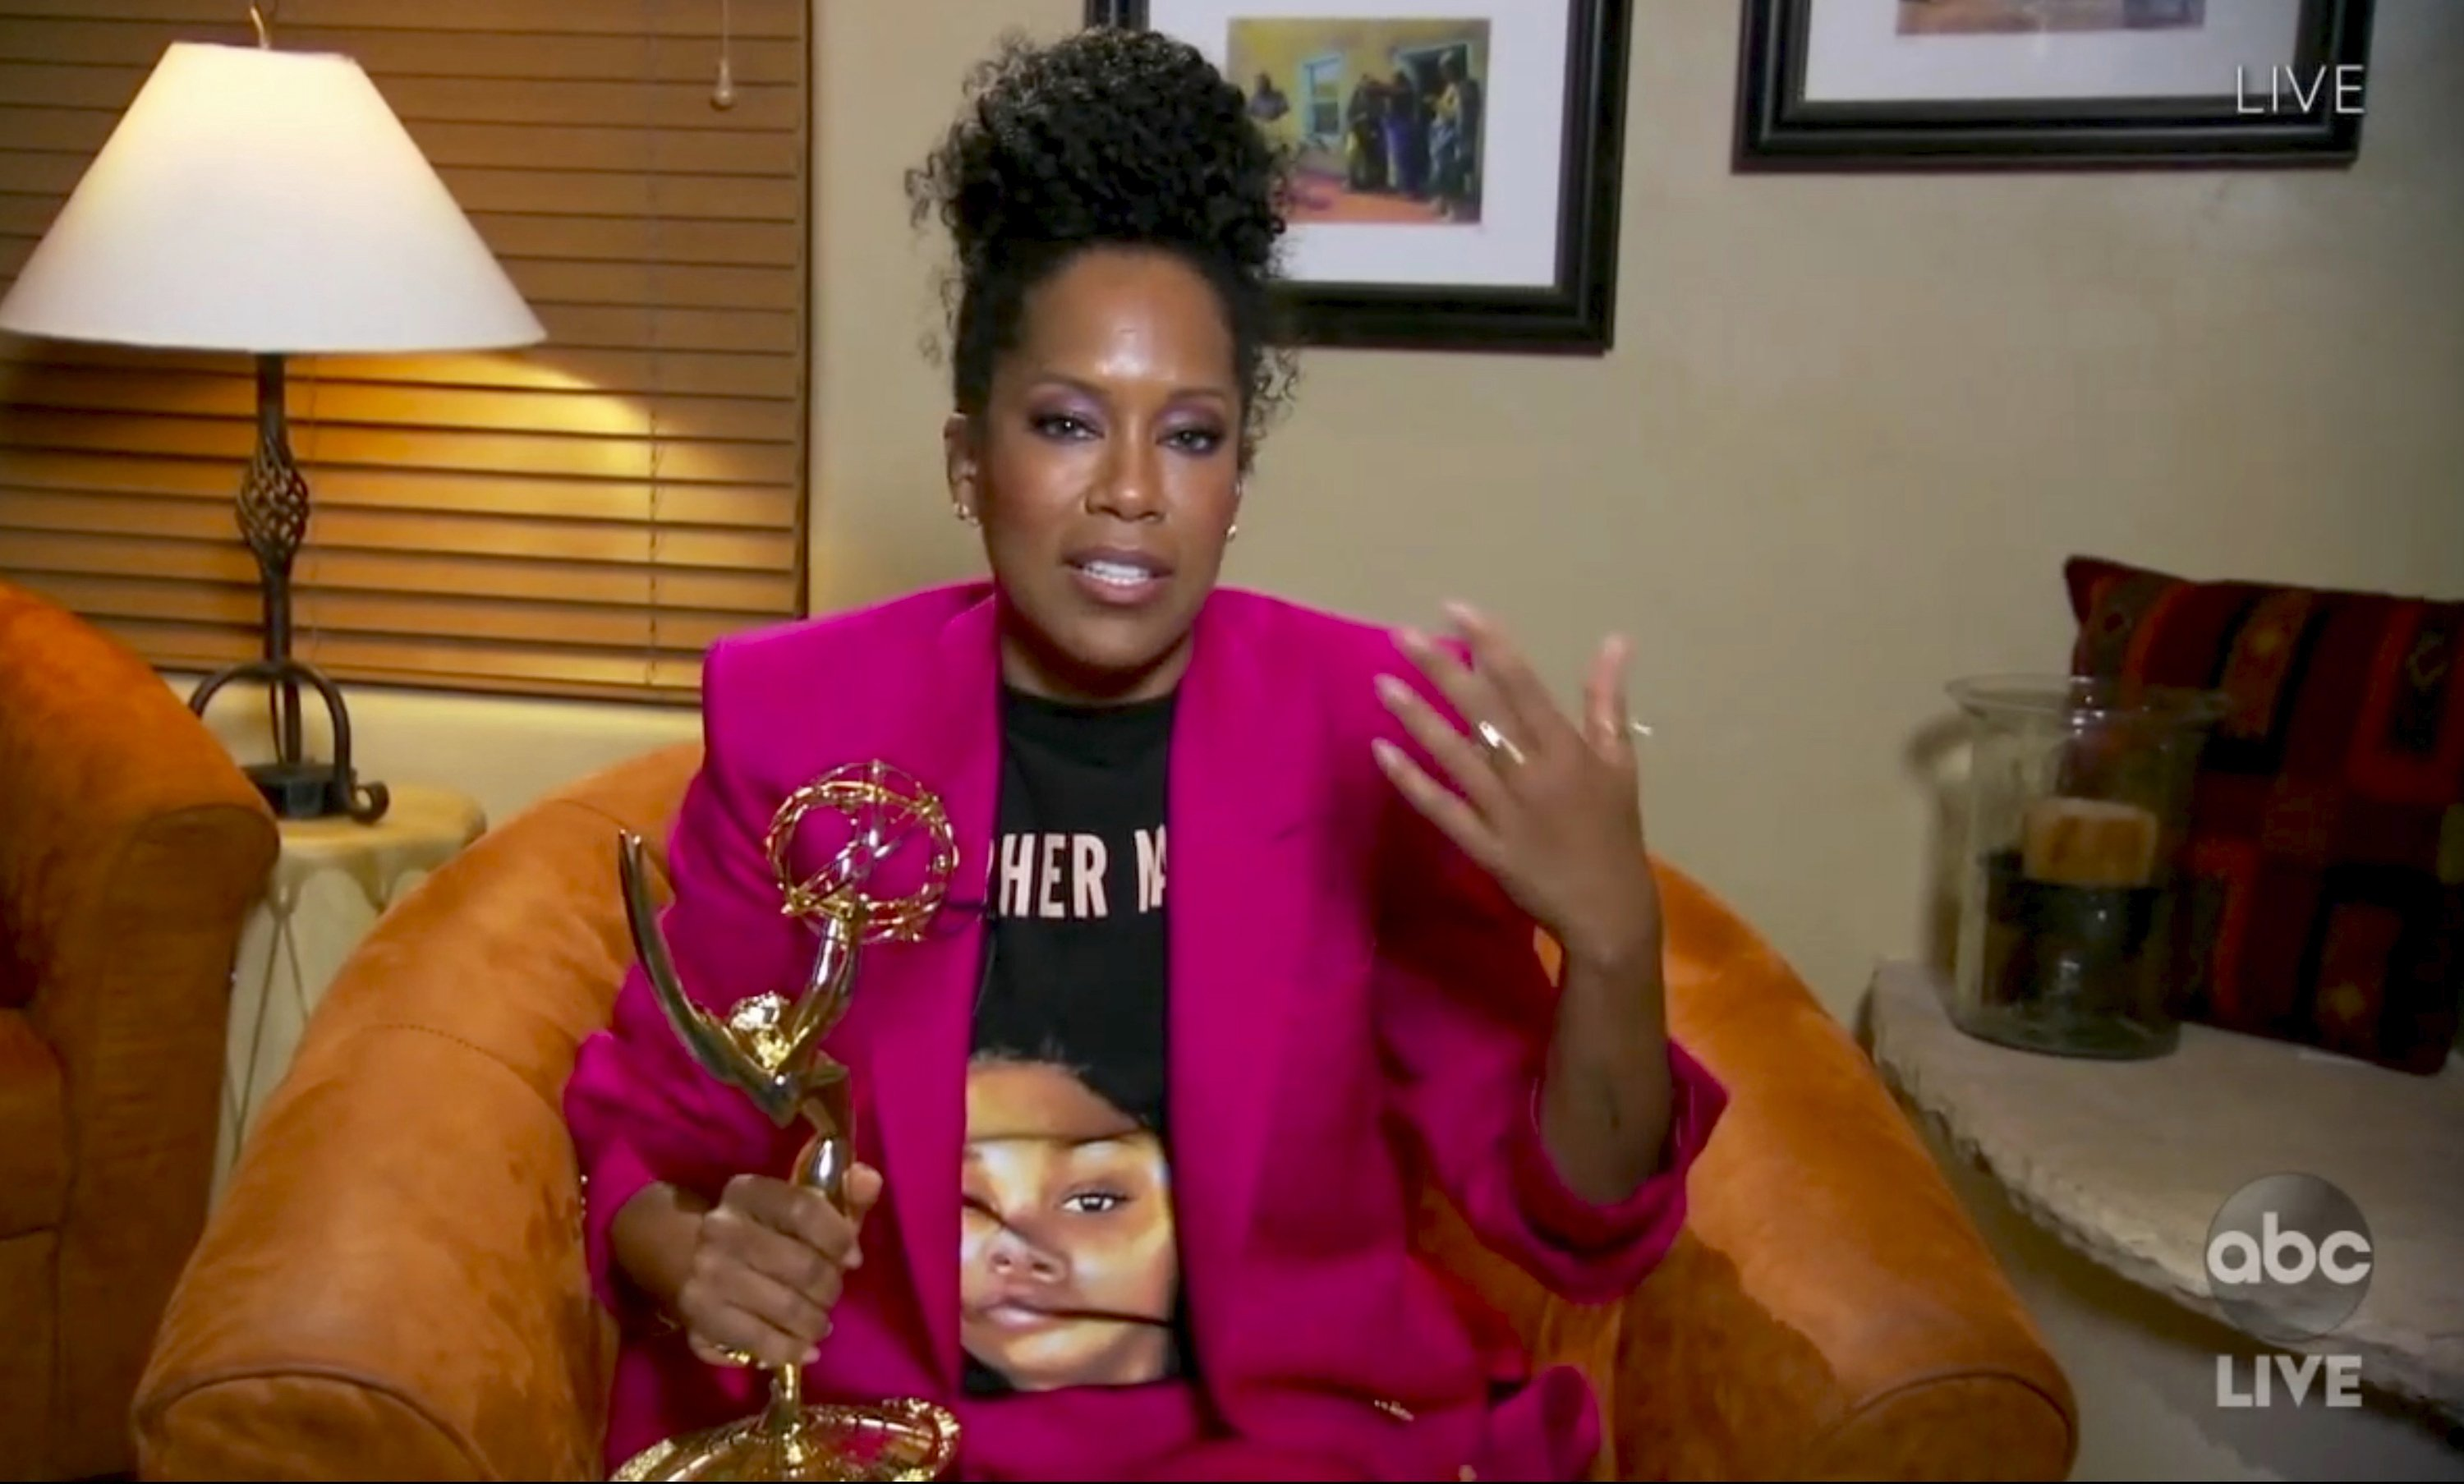 Emmy winners highlight push for social justice